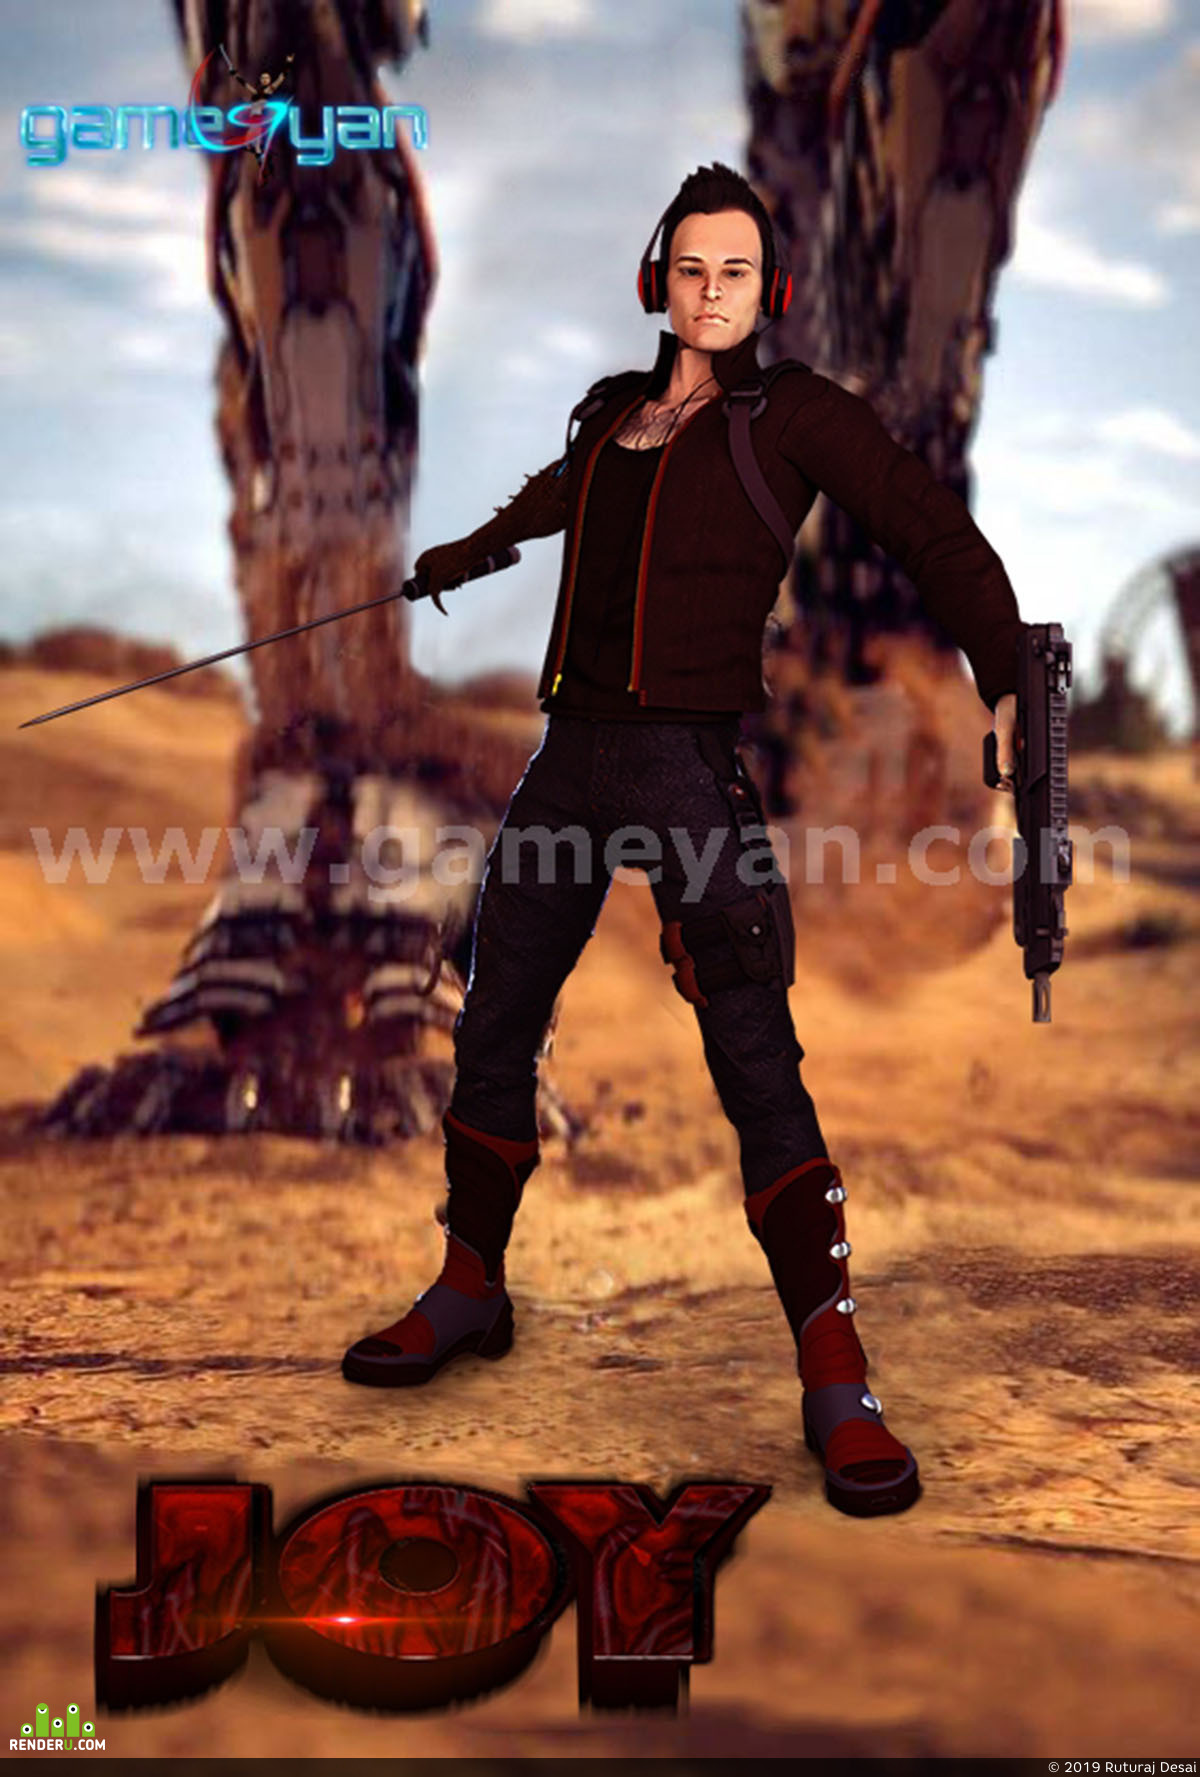 preview 3D Joy male Warrior Character Animation Studio By GameYan game development companies